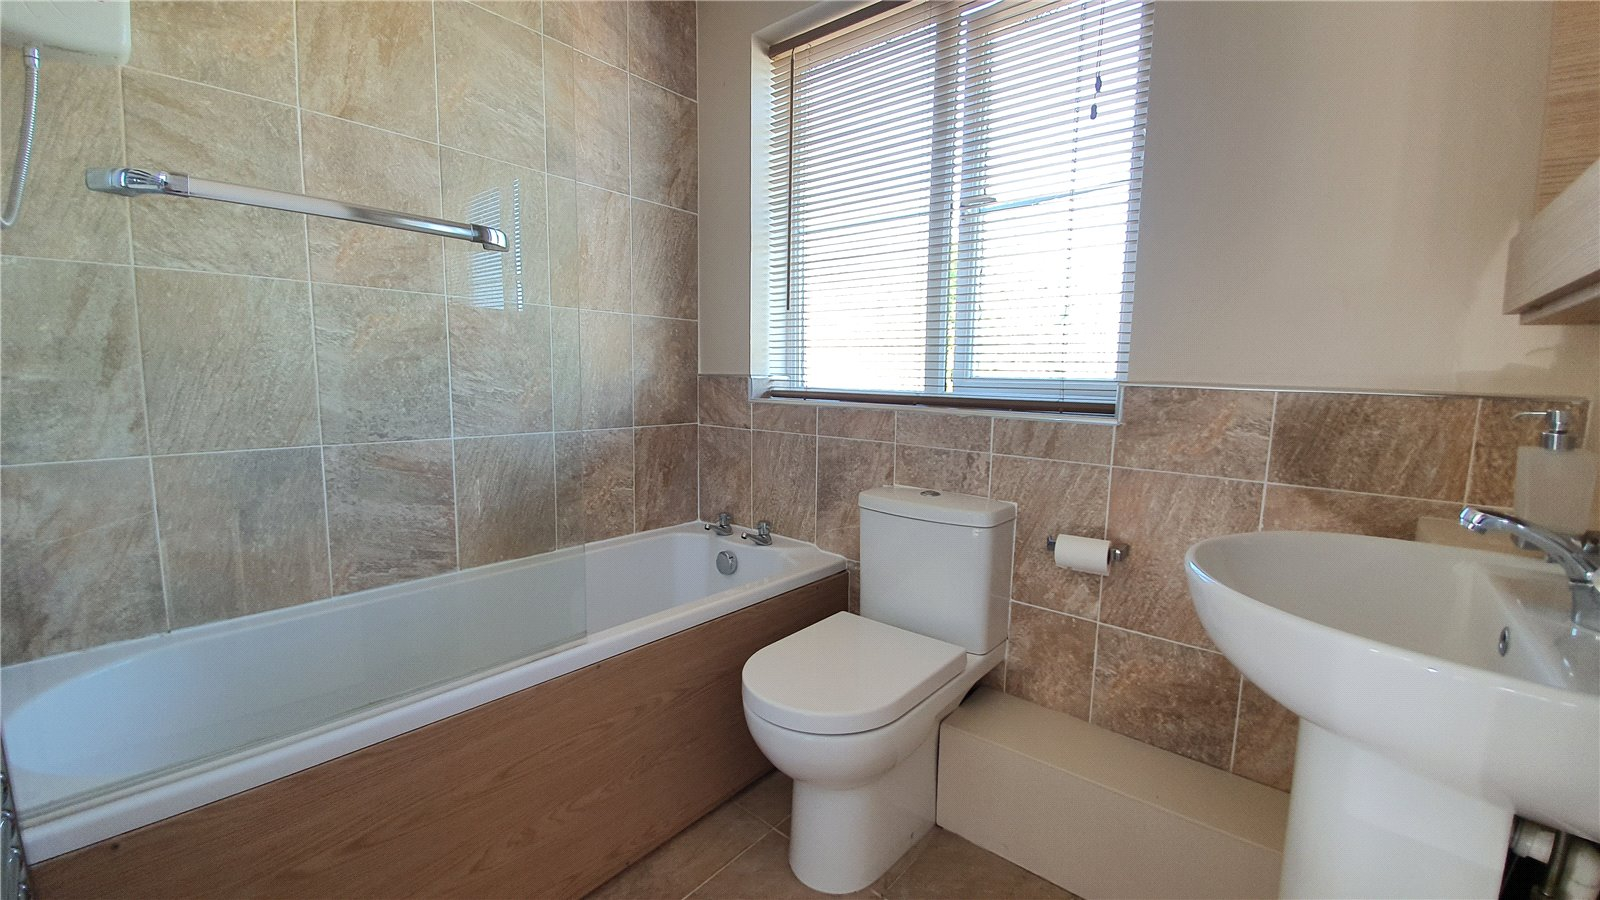 3 bed house for sale in Farm Close, Wyboston  - Property Image 7